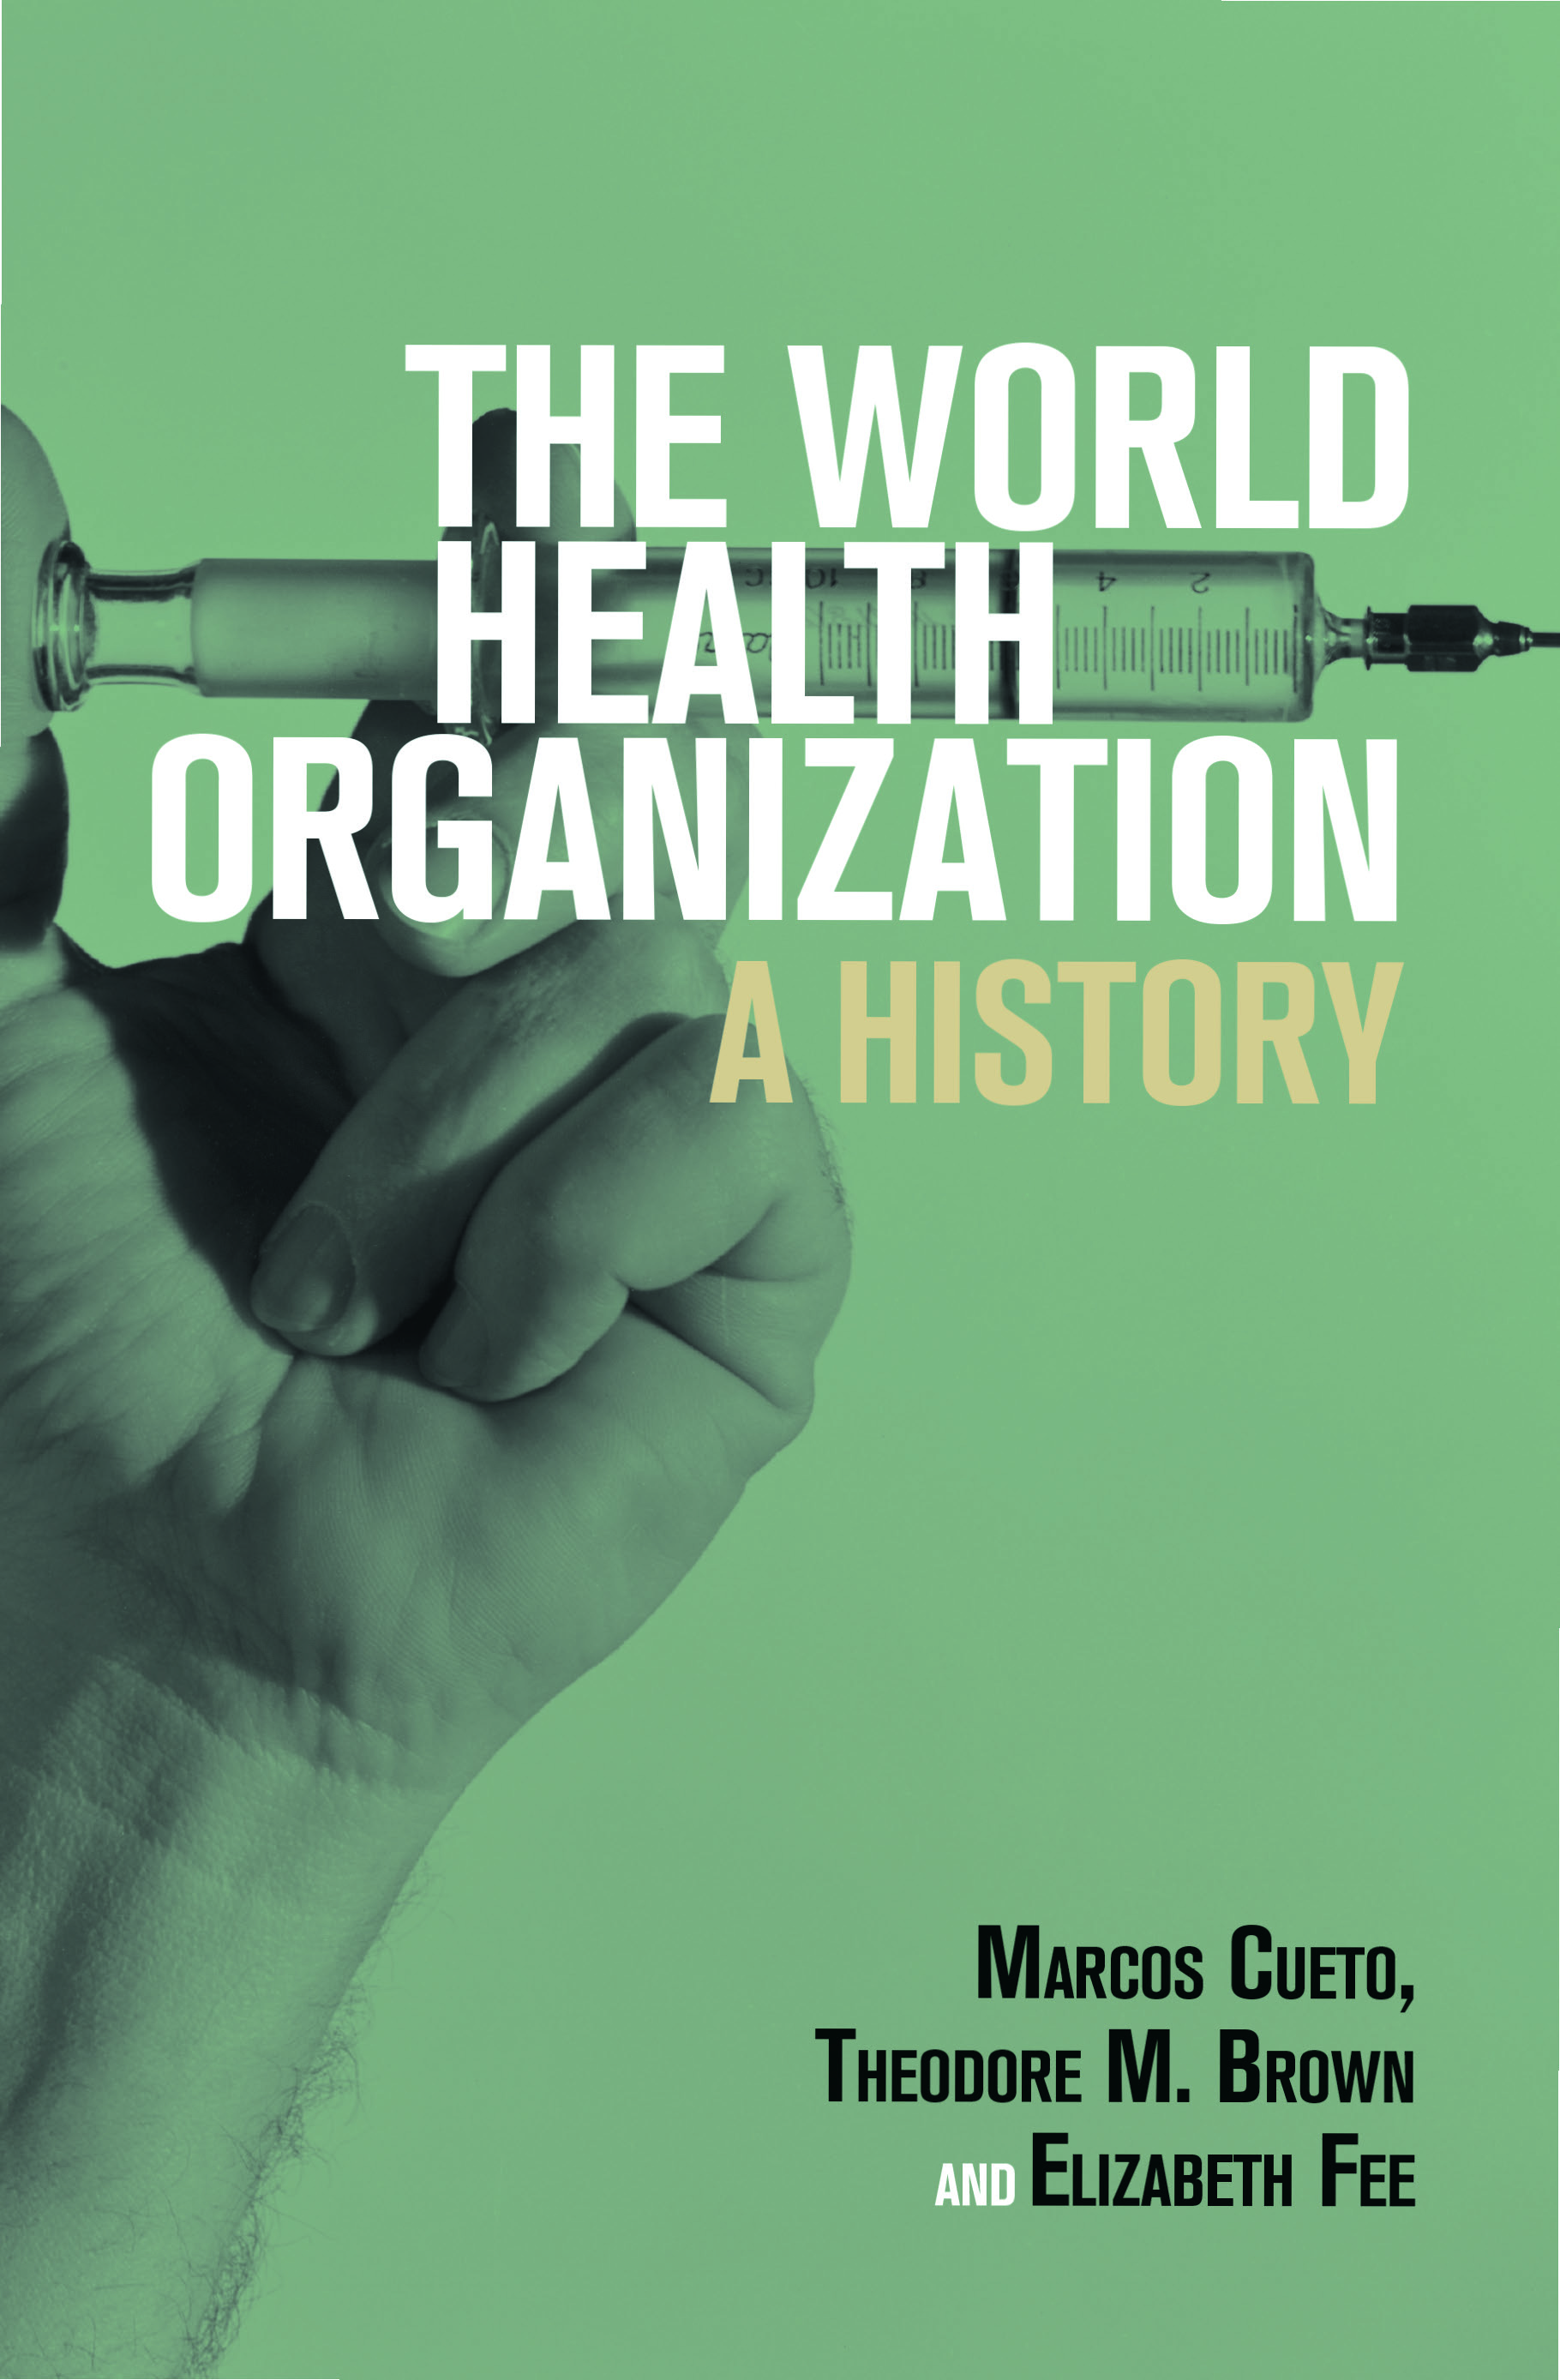 The World Health Organization - A History